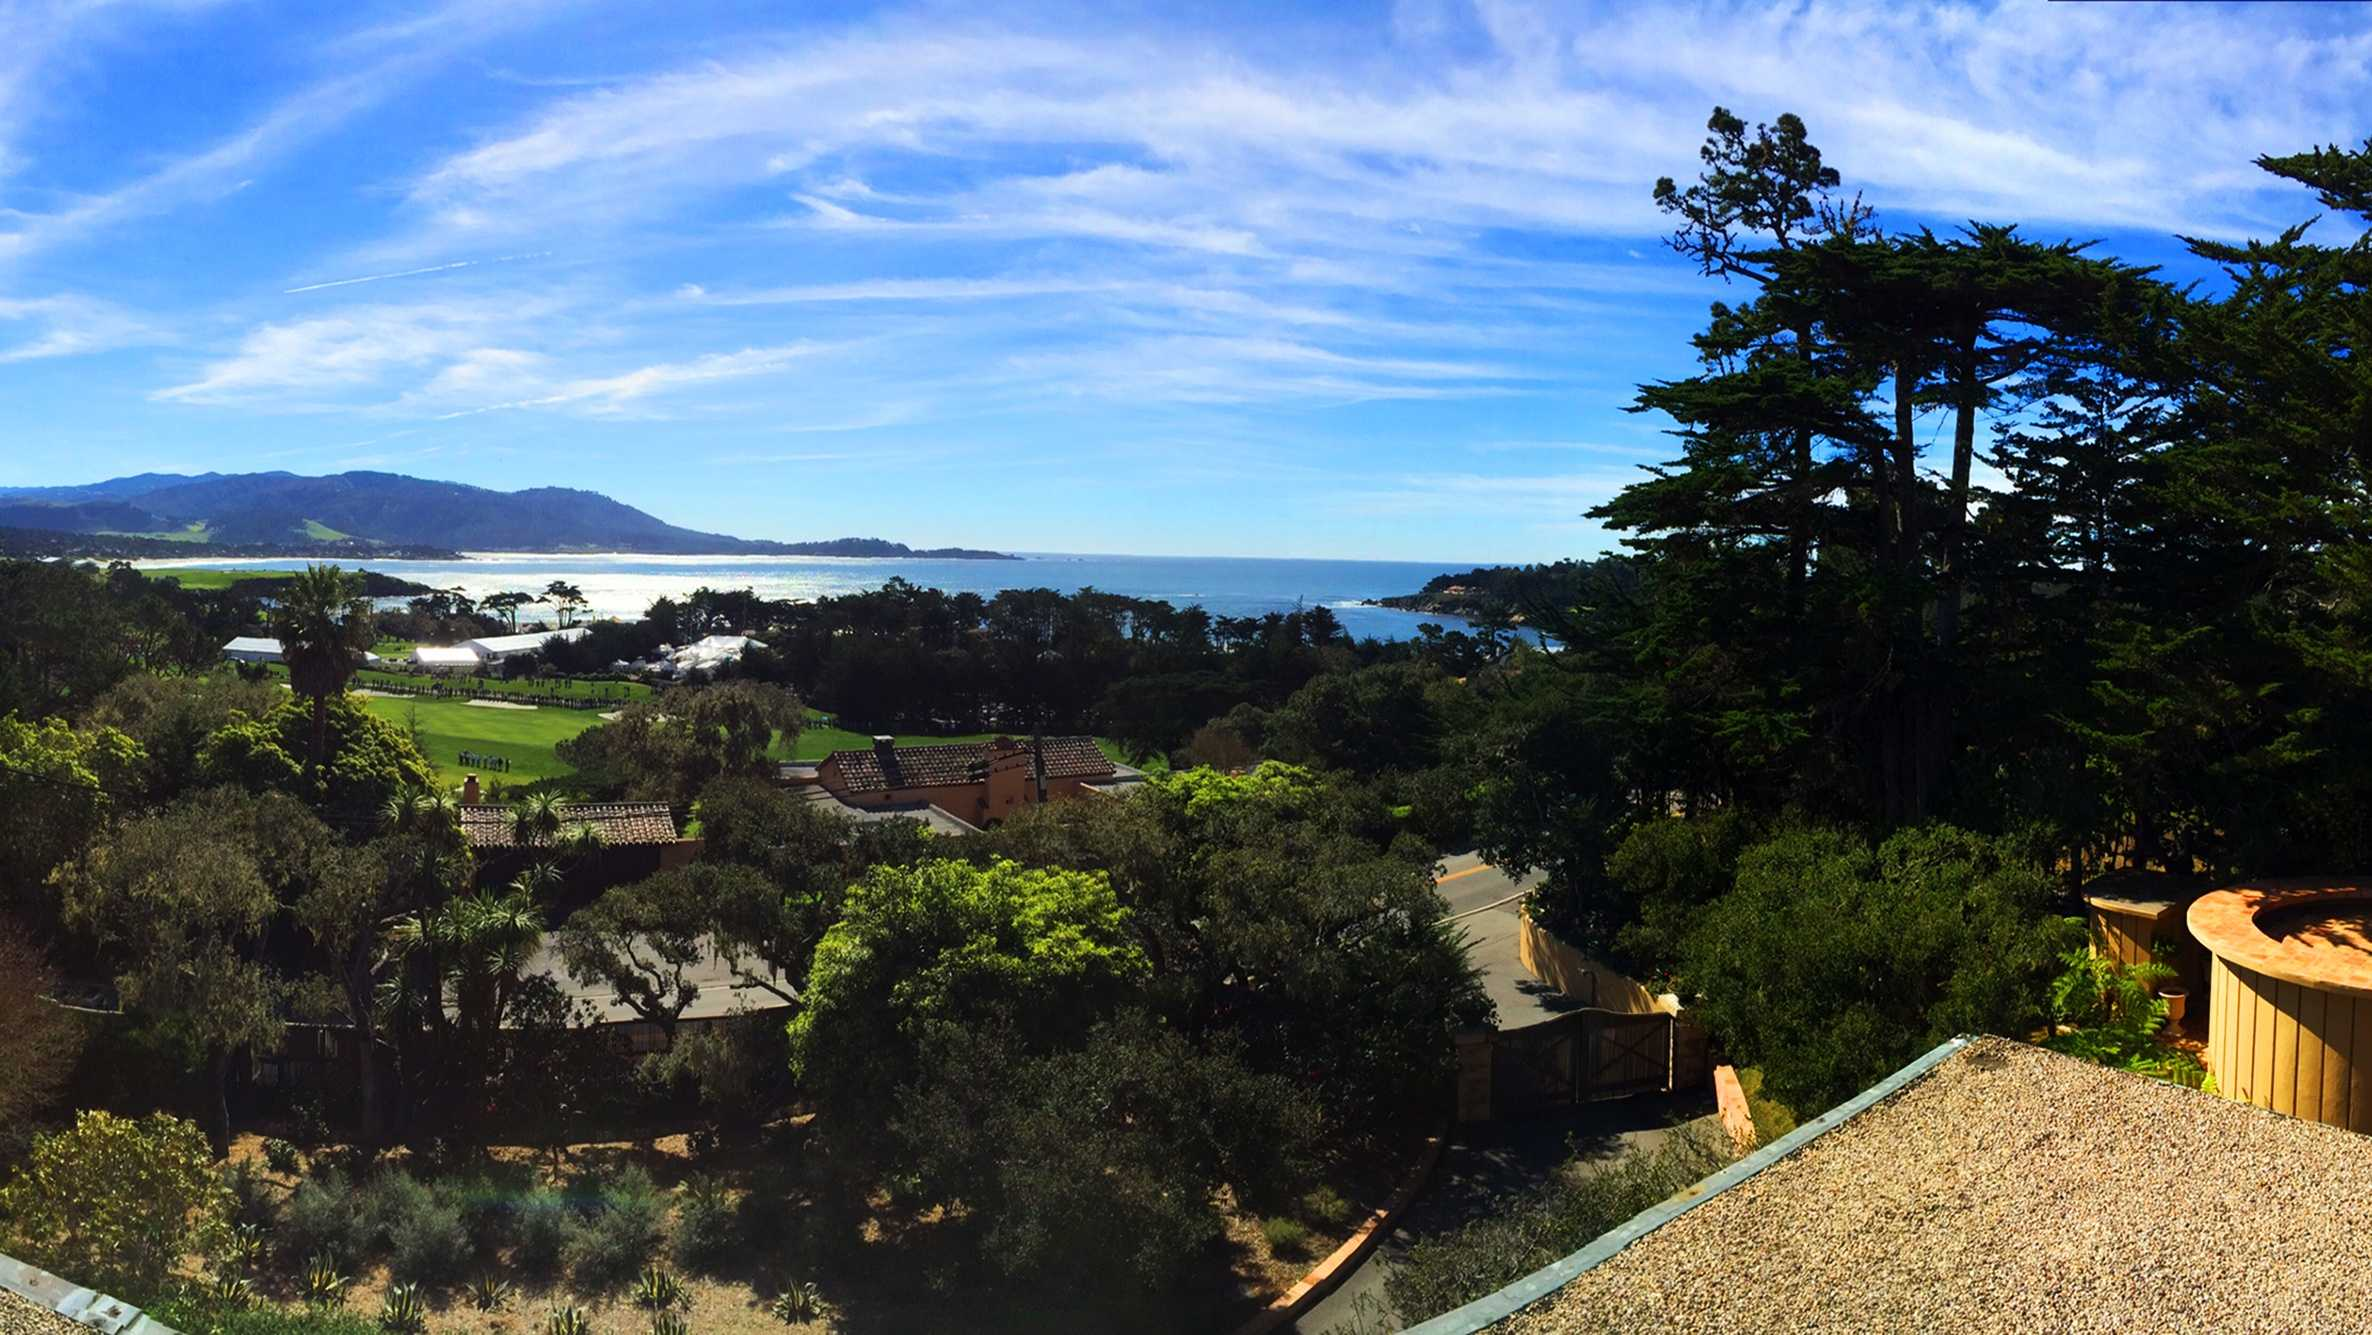 The Pebble Beach National Pro-Am was blessed with beautiful weather.